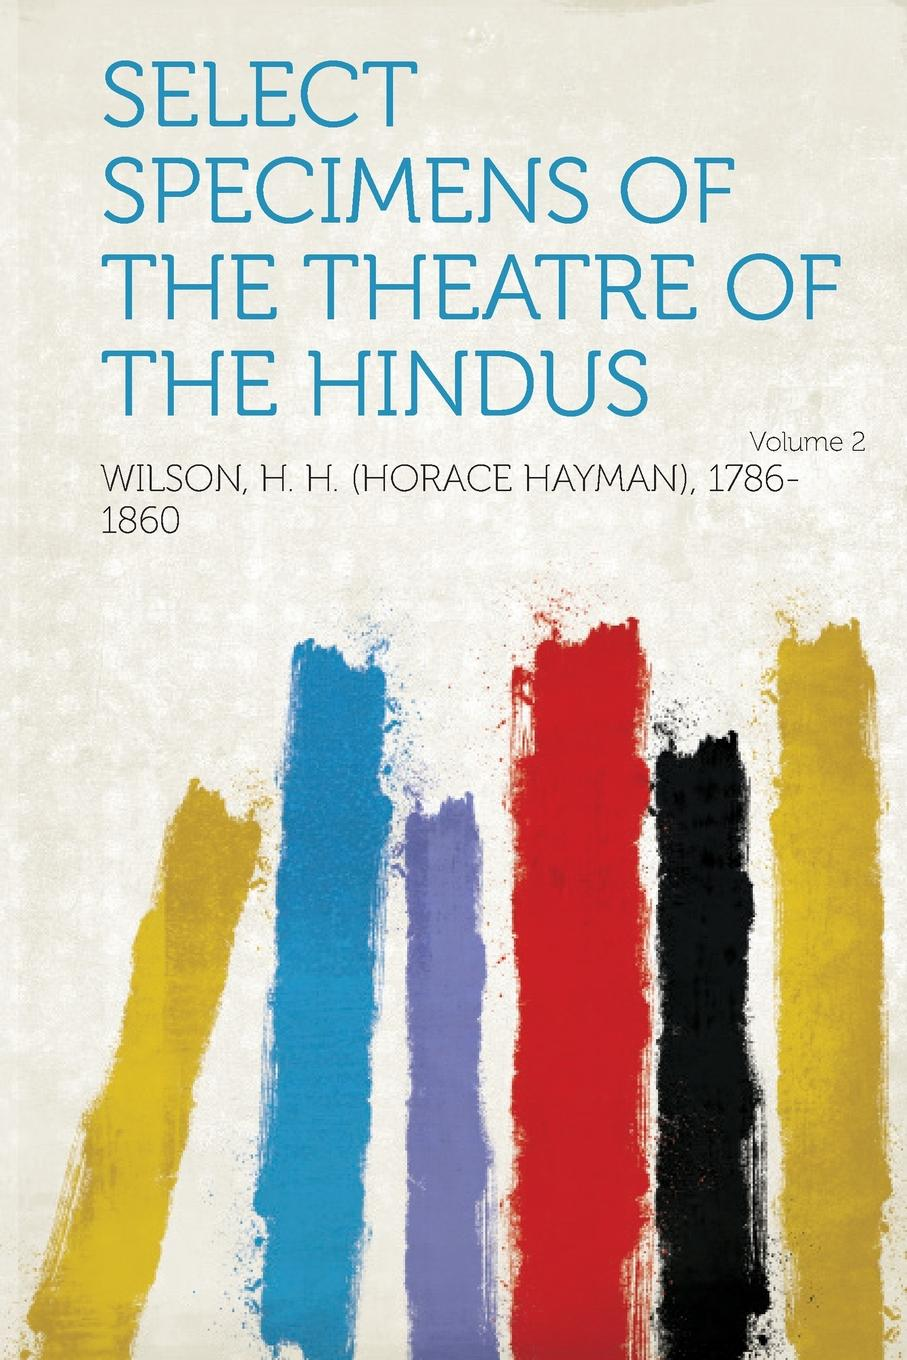 купить Select Specimens of the Theatre of the Hindus Volume 2 онлайн